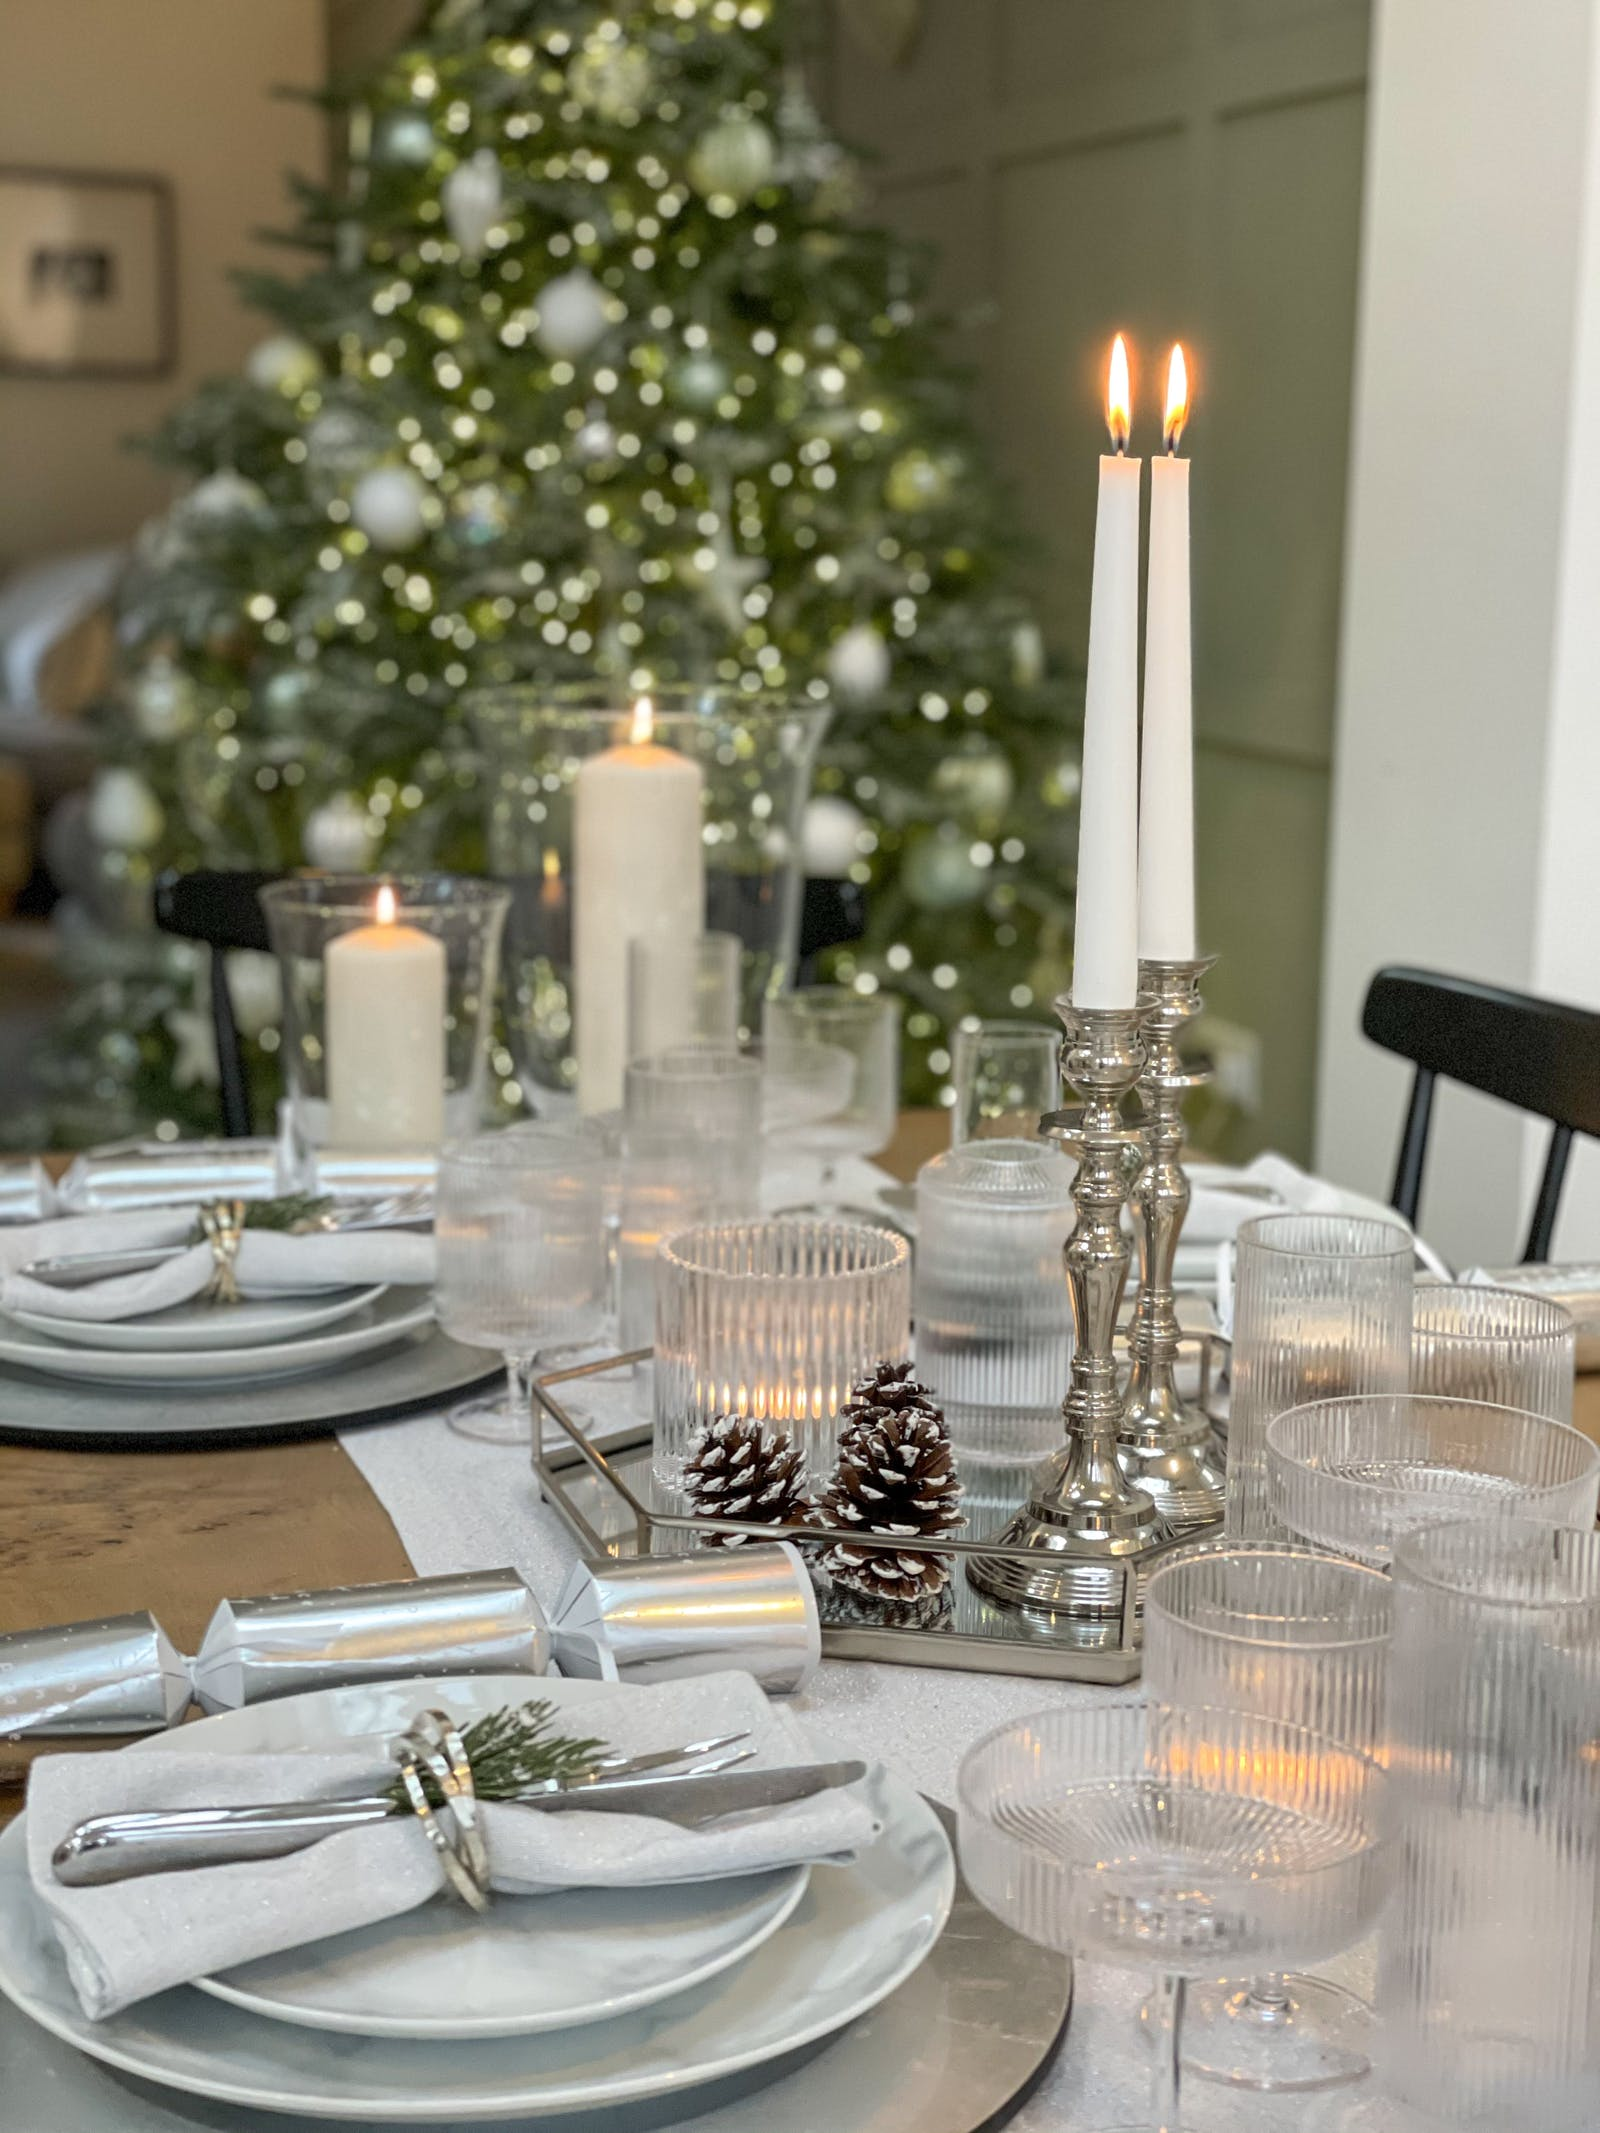 Dining table with Christmas decorations and burning candles on candle sticks